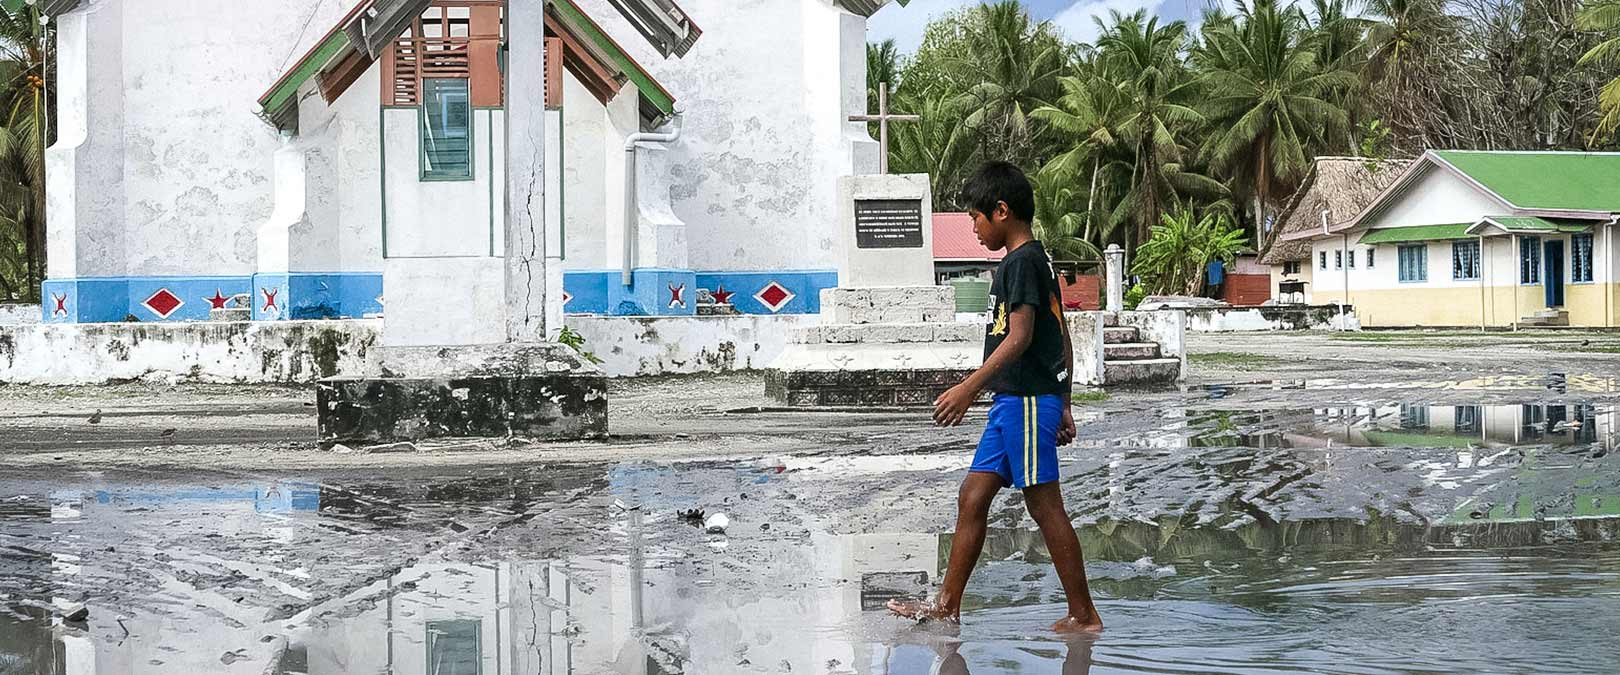 Main square of Nui Island under water. Tropical Cyclone Pam caused widespread damage and marine flooding. Photo: Silke von Brockhausen/UNDP